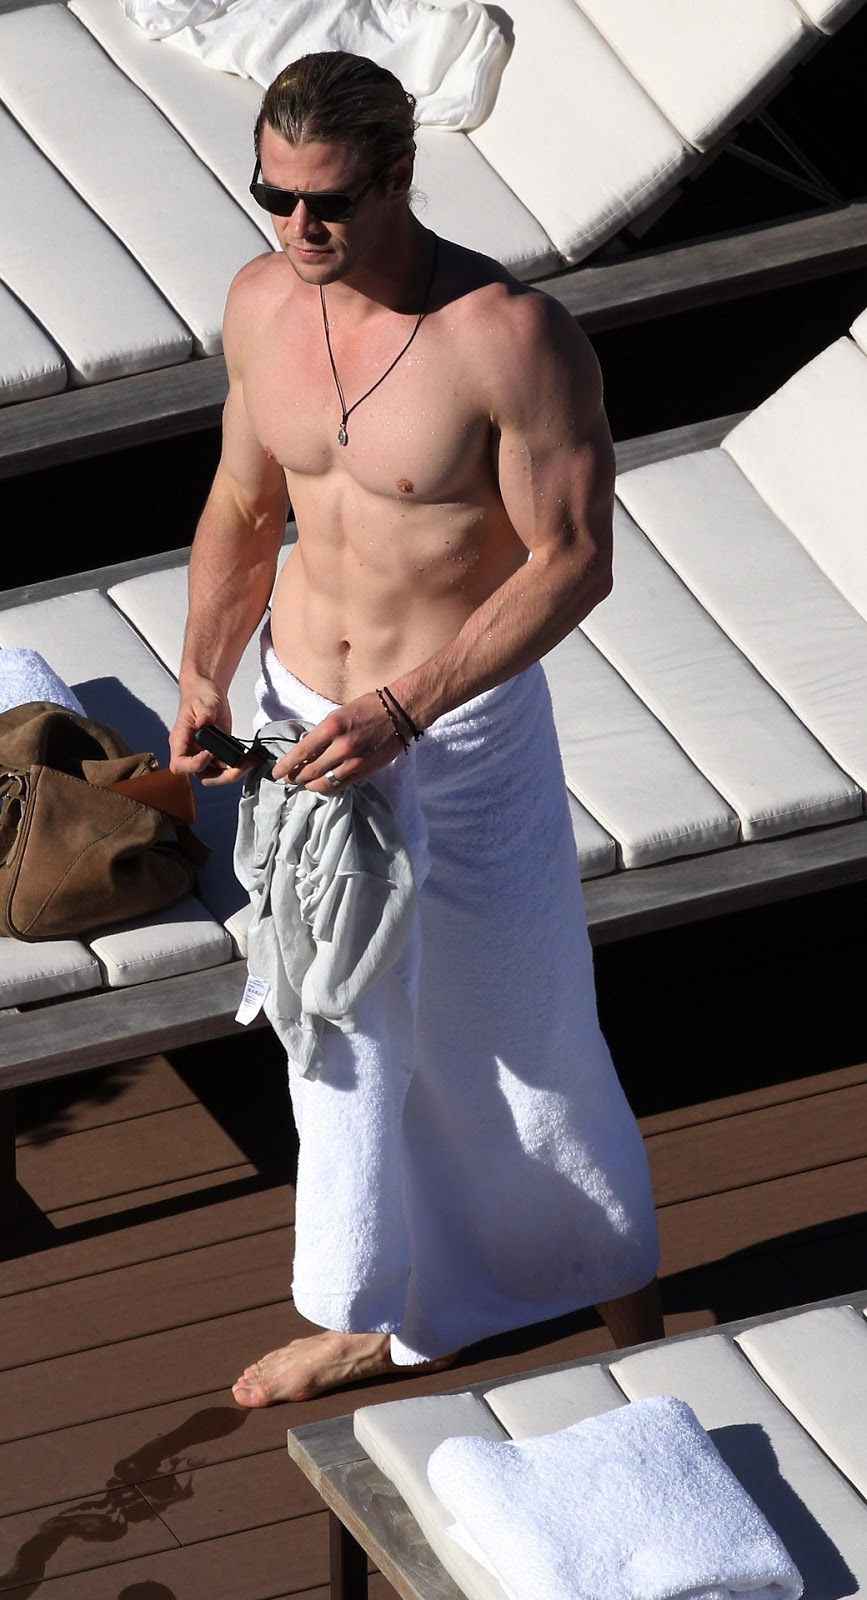 Straight Jock Feet: Chris Hemsworth veiny THOR feet...